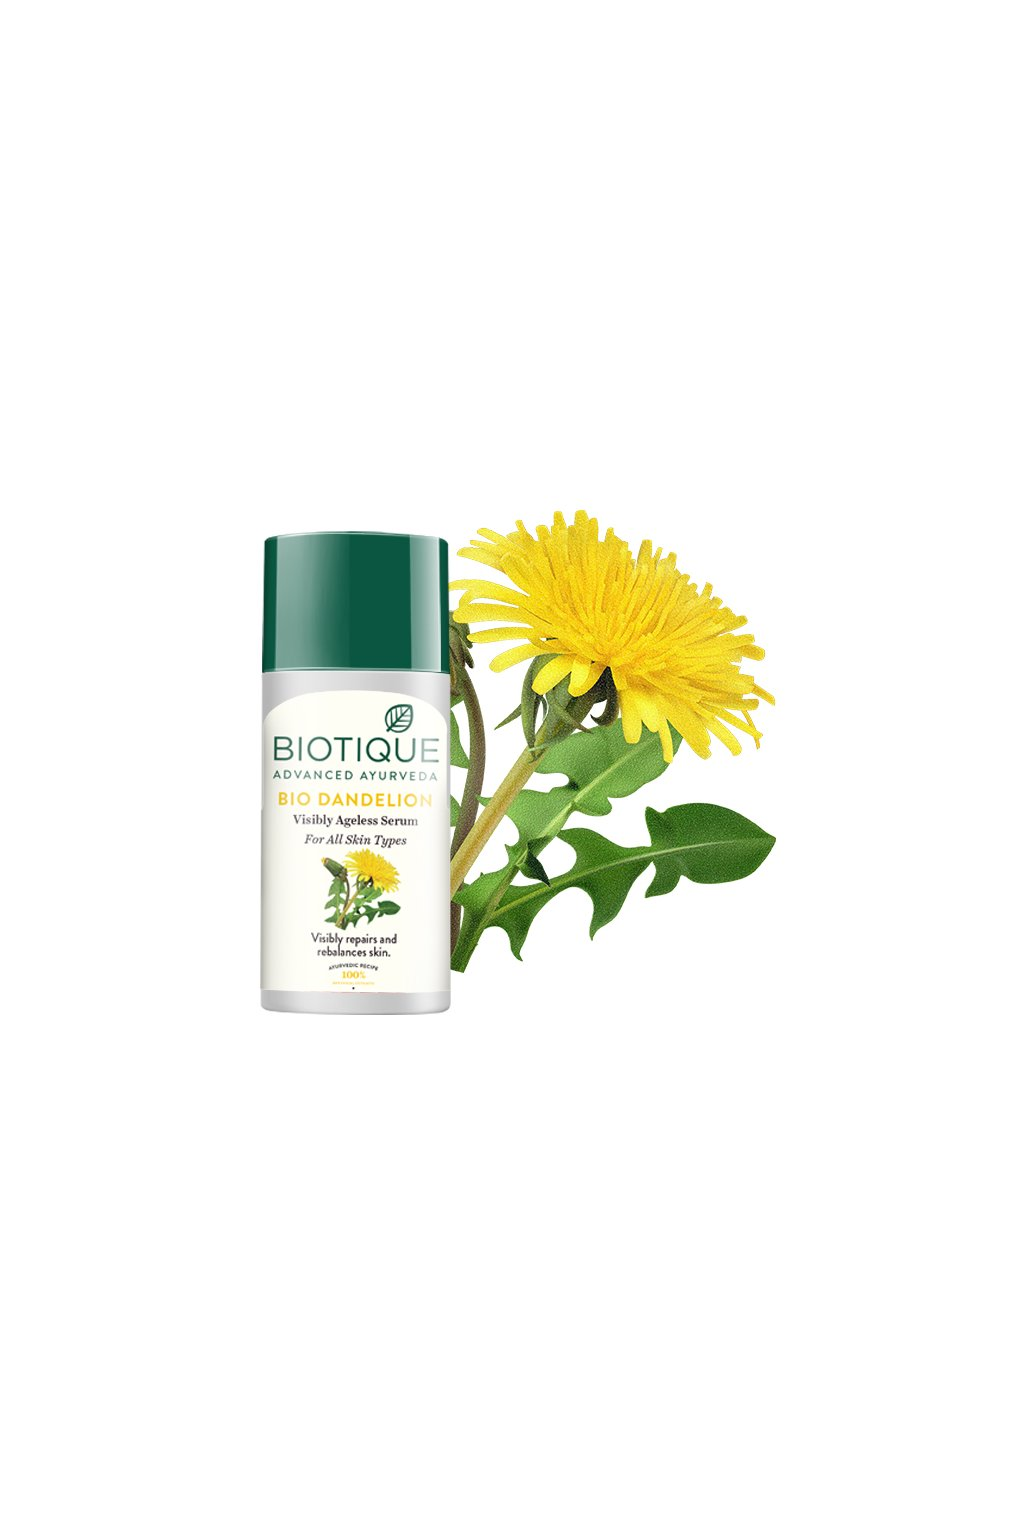 Bio dandelion visibly ageless serum 2